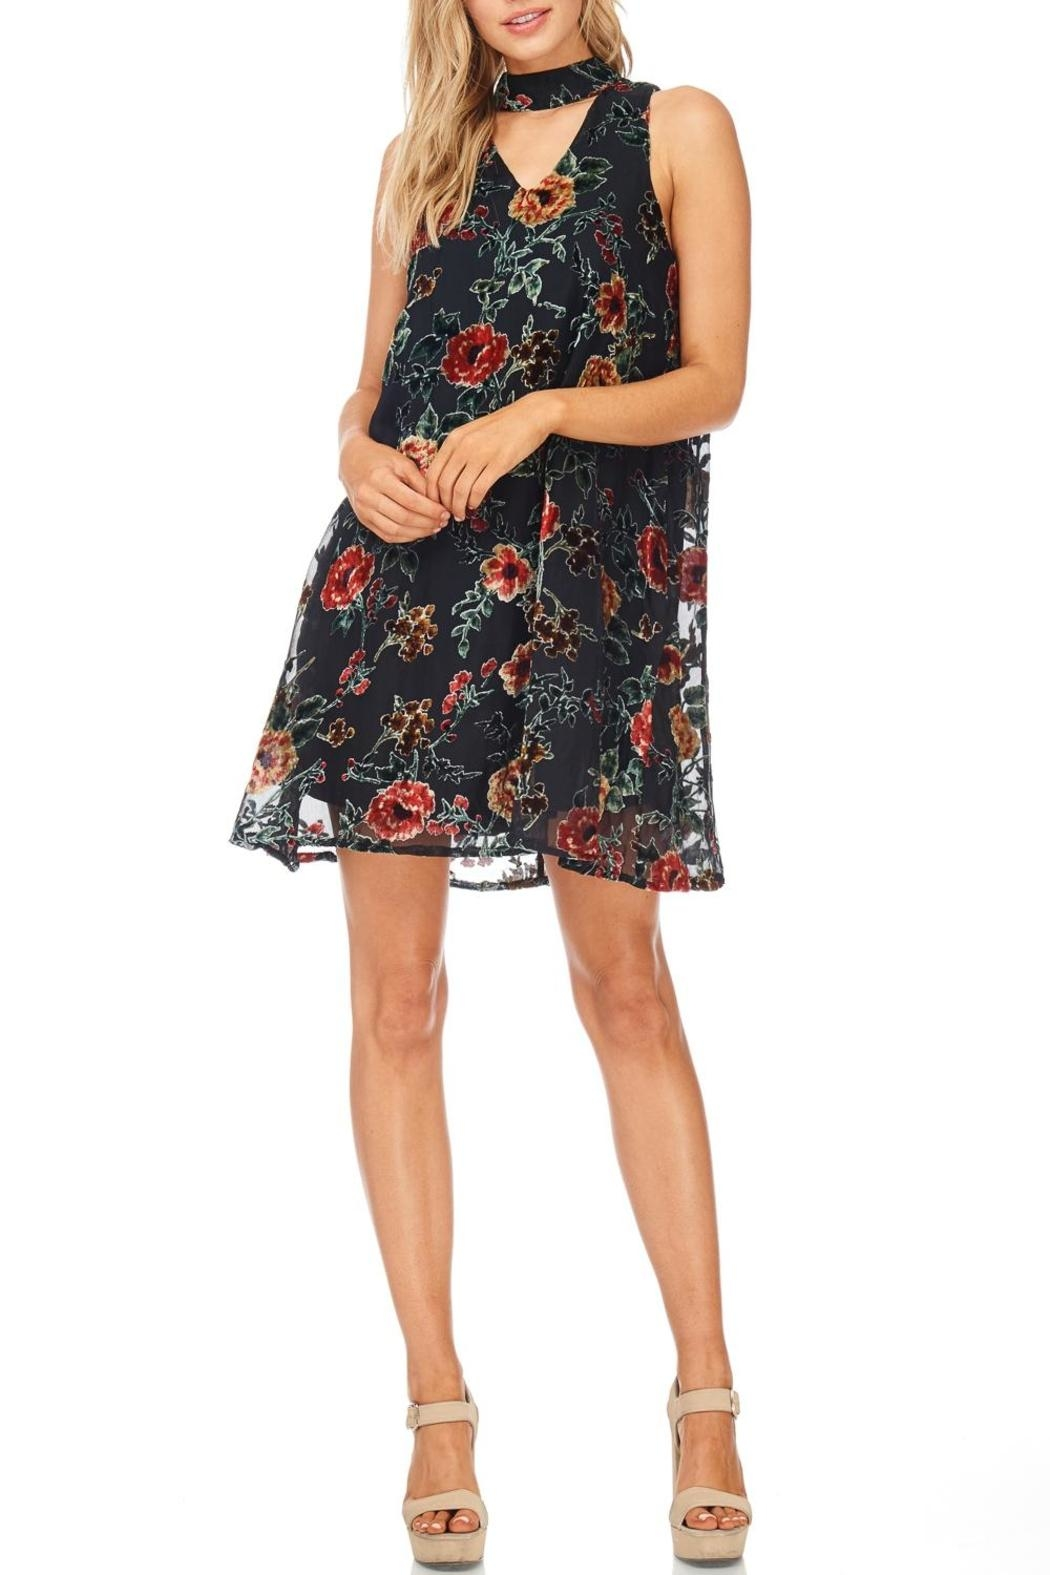 She + Sky Black Floral Velvet Dress - Front Cropped Image